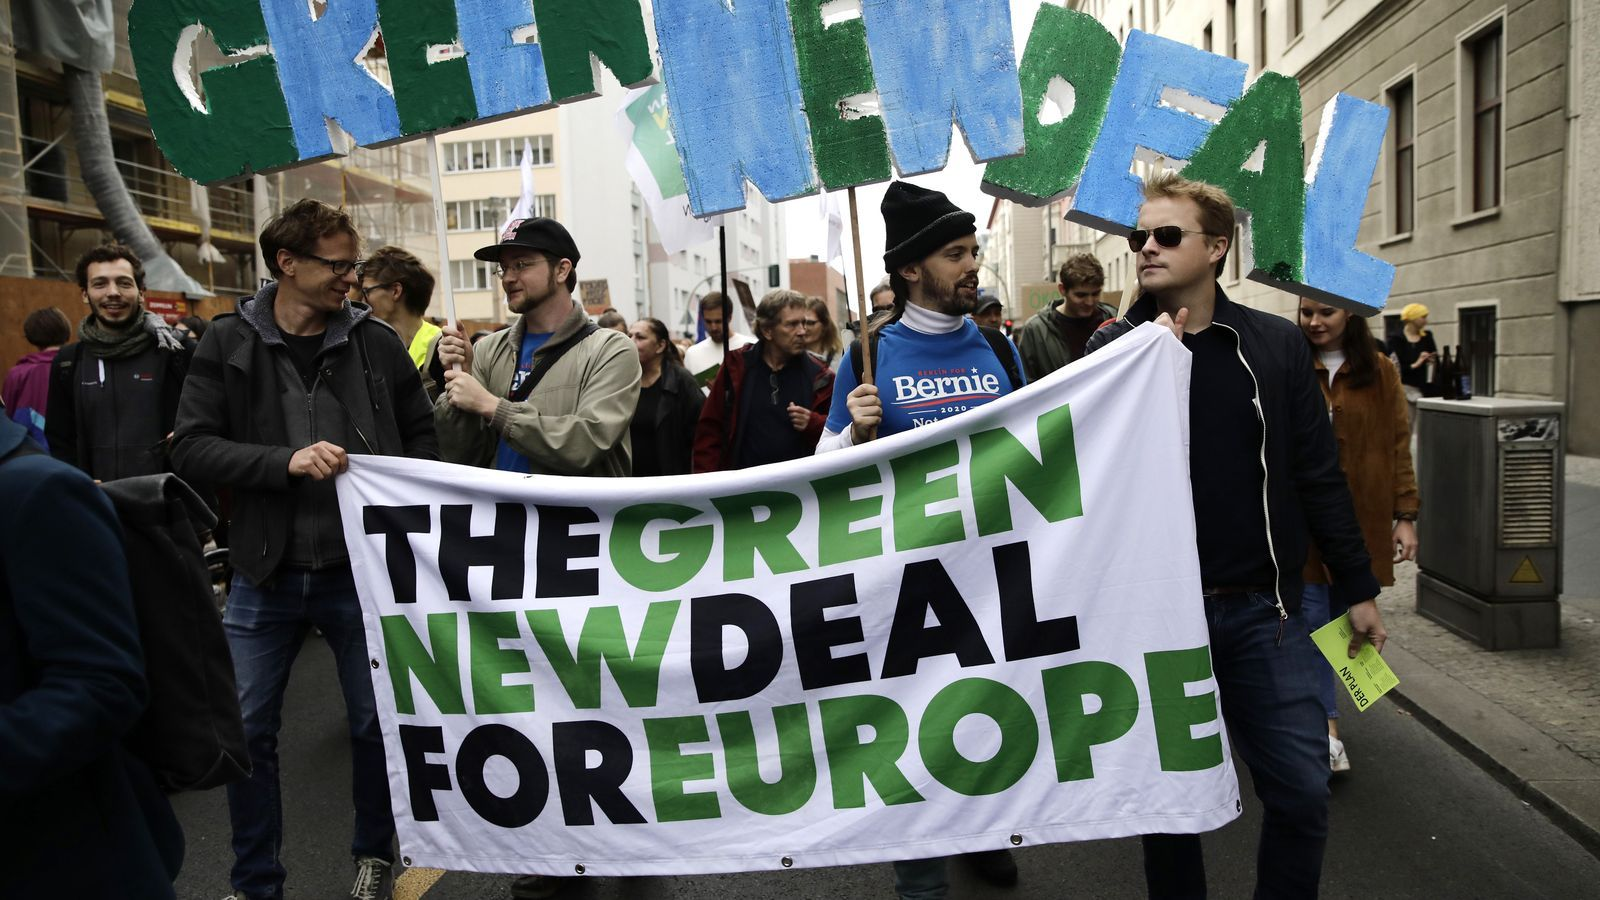 Green New Deal per a les generacions futures